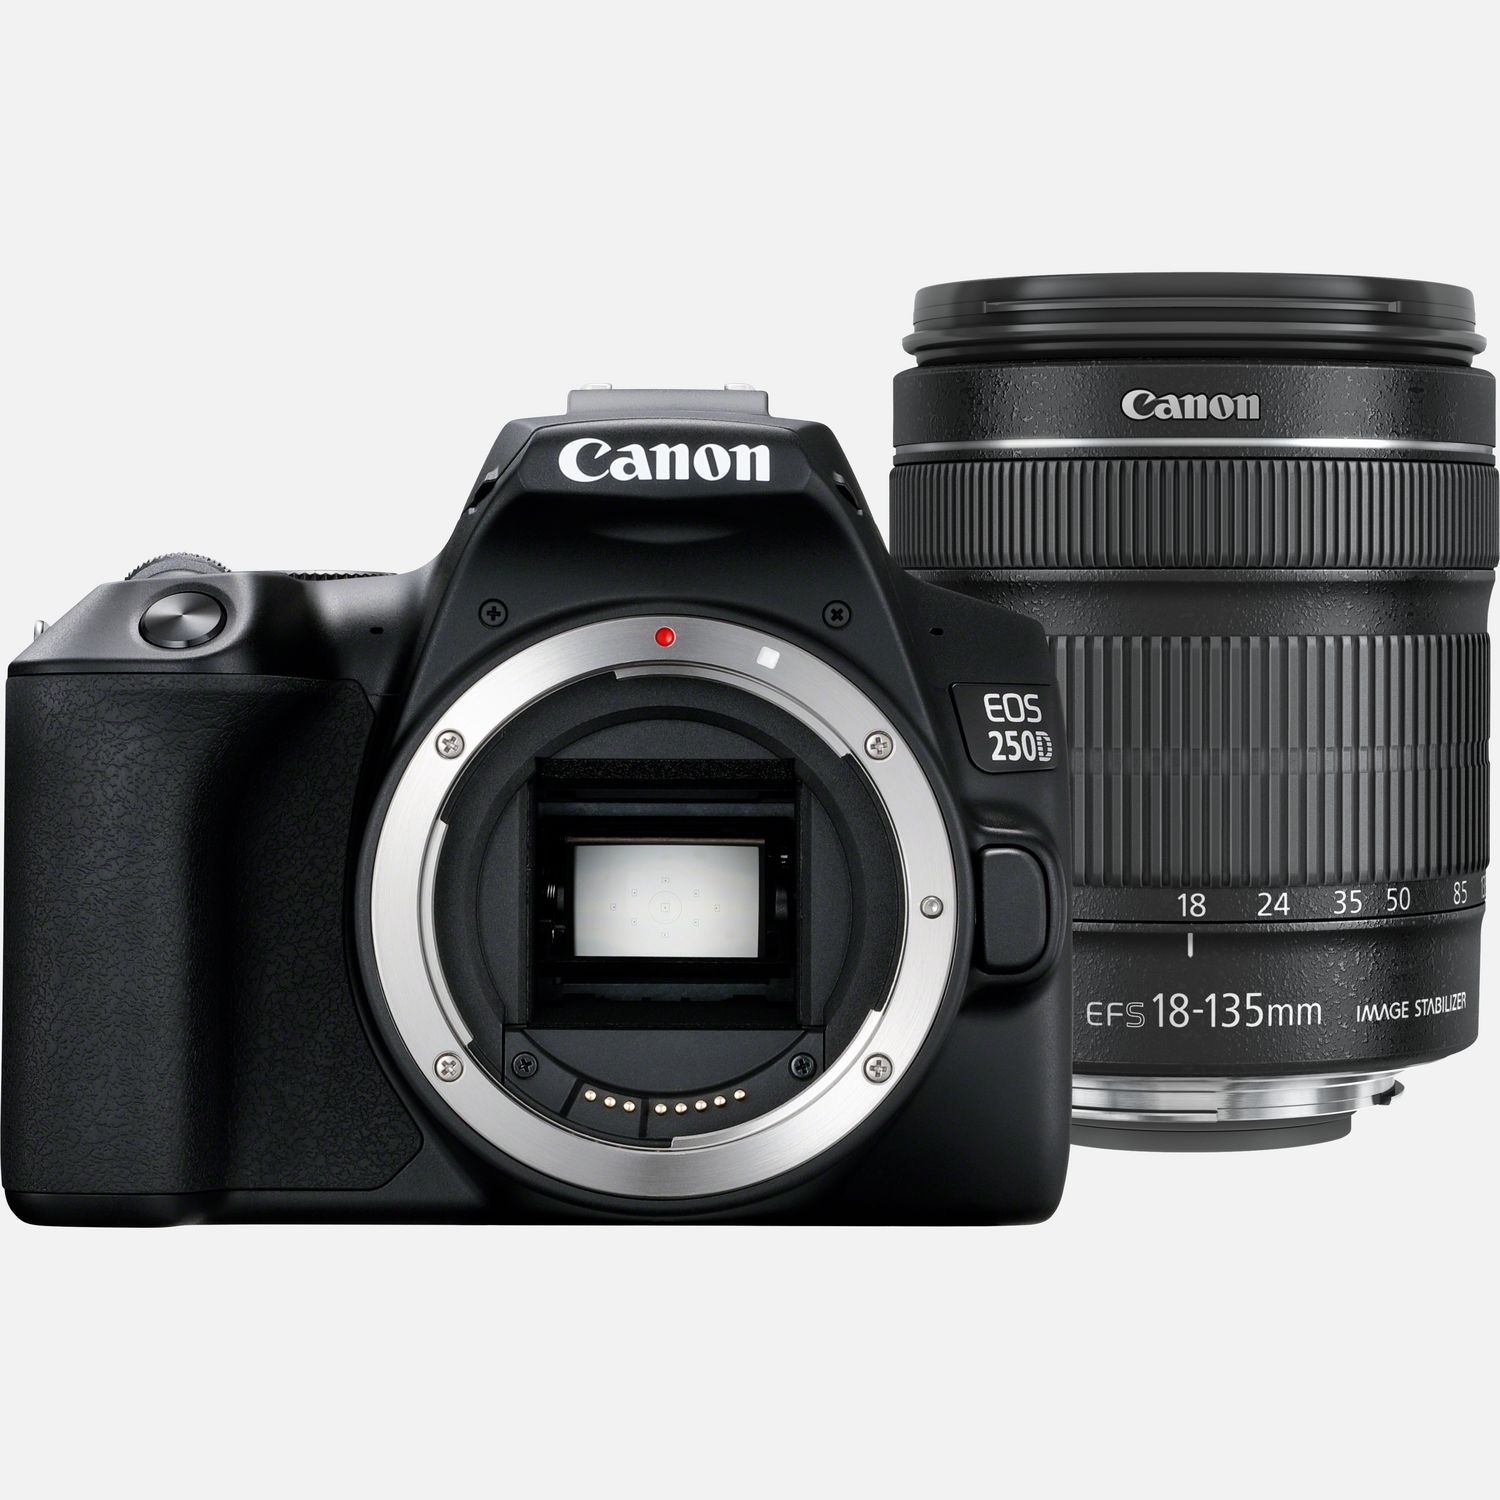 Image of Canon EOS 250D Body, Black and EF-S 18-135mm f/3.5-5.6 IS STM lens